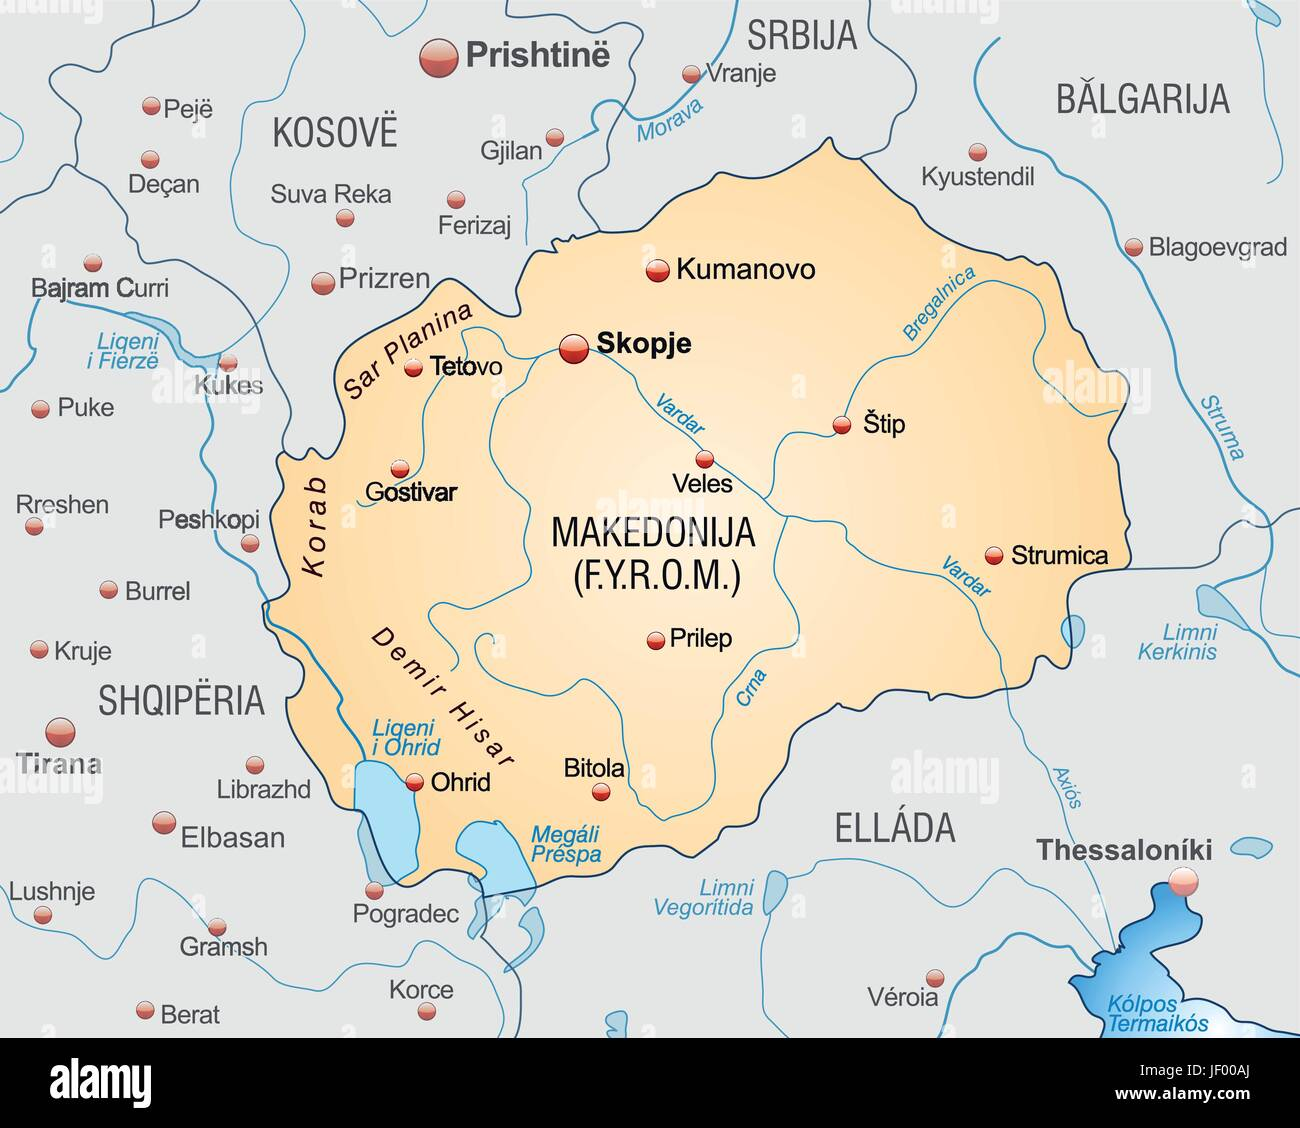 border card synopsis borders macedonia atlas map of the world